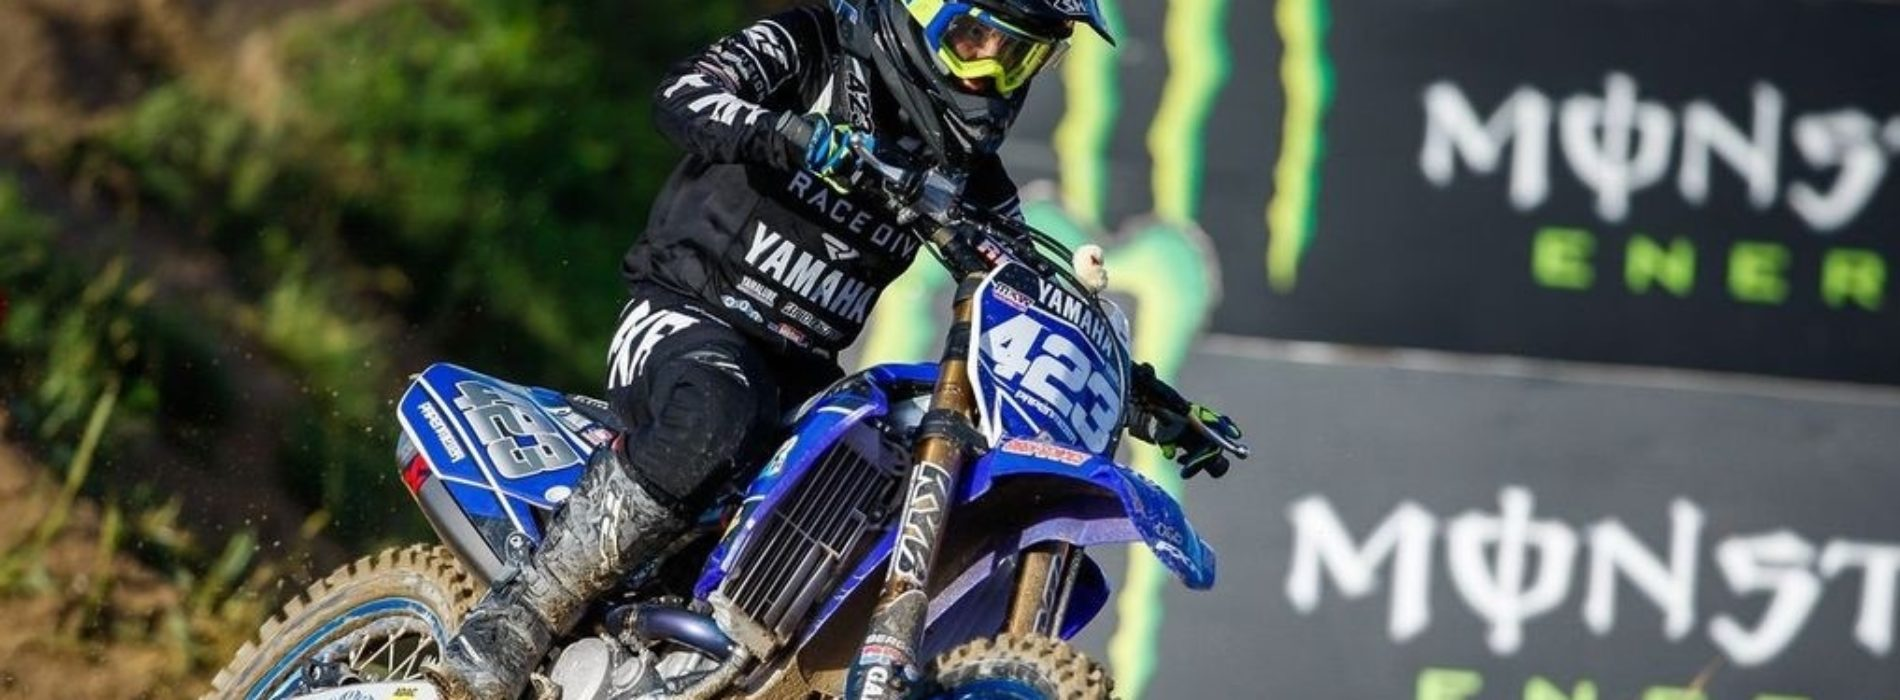 Larissa Papenmeier has gained plenty of momentum heading into WMX Final Round at Trentino in couple of weeks